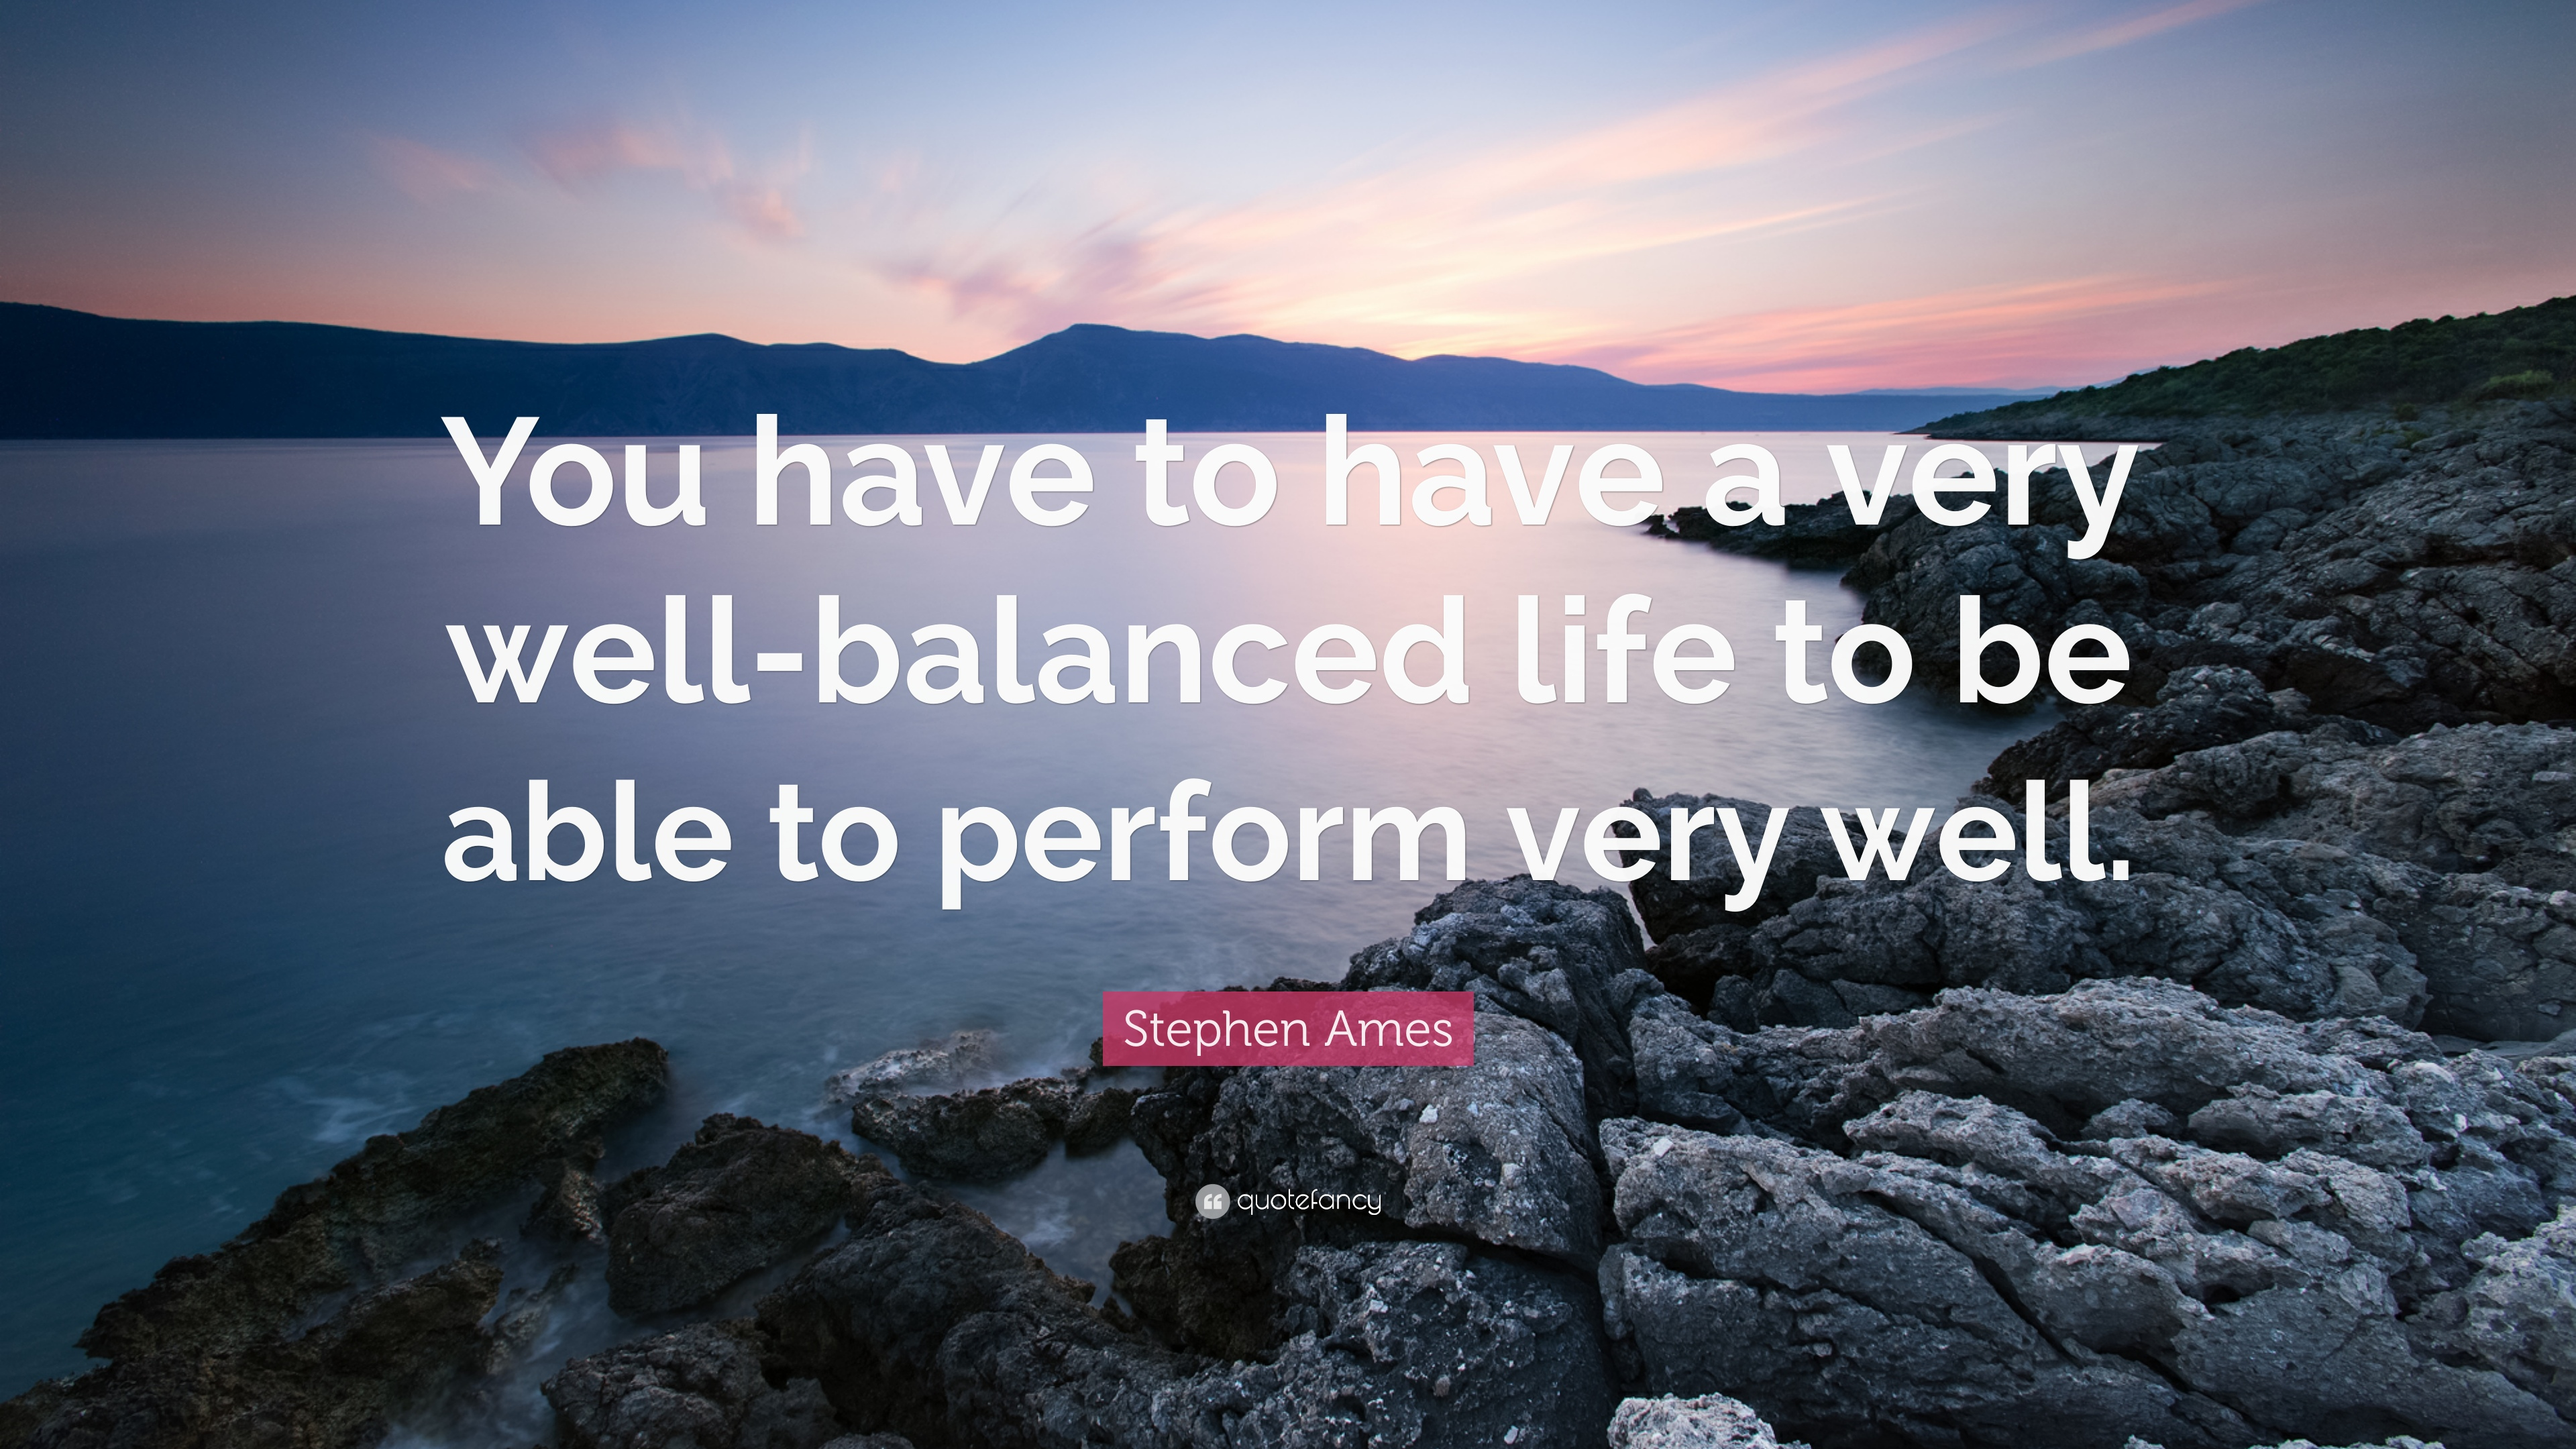 Balanced Life Quotes Stephen Ames Quotes 2 Wallpapers  Quotefancy